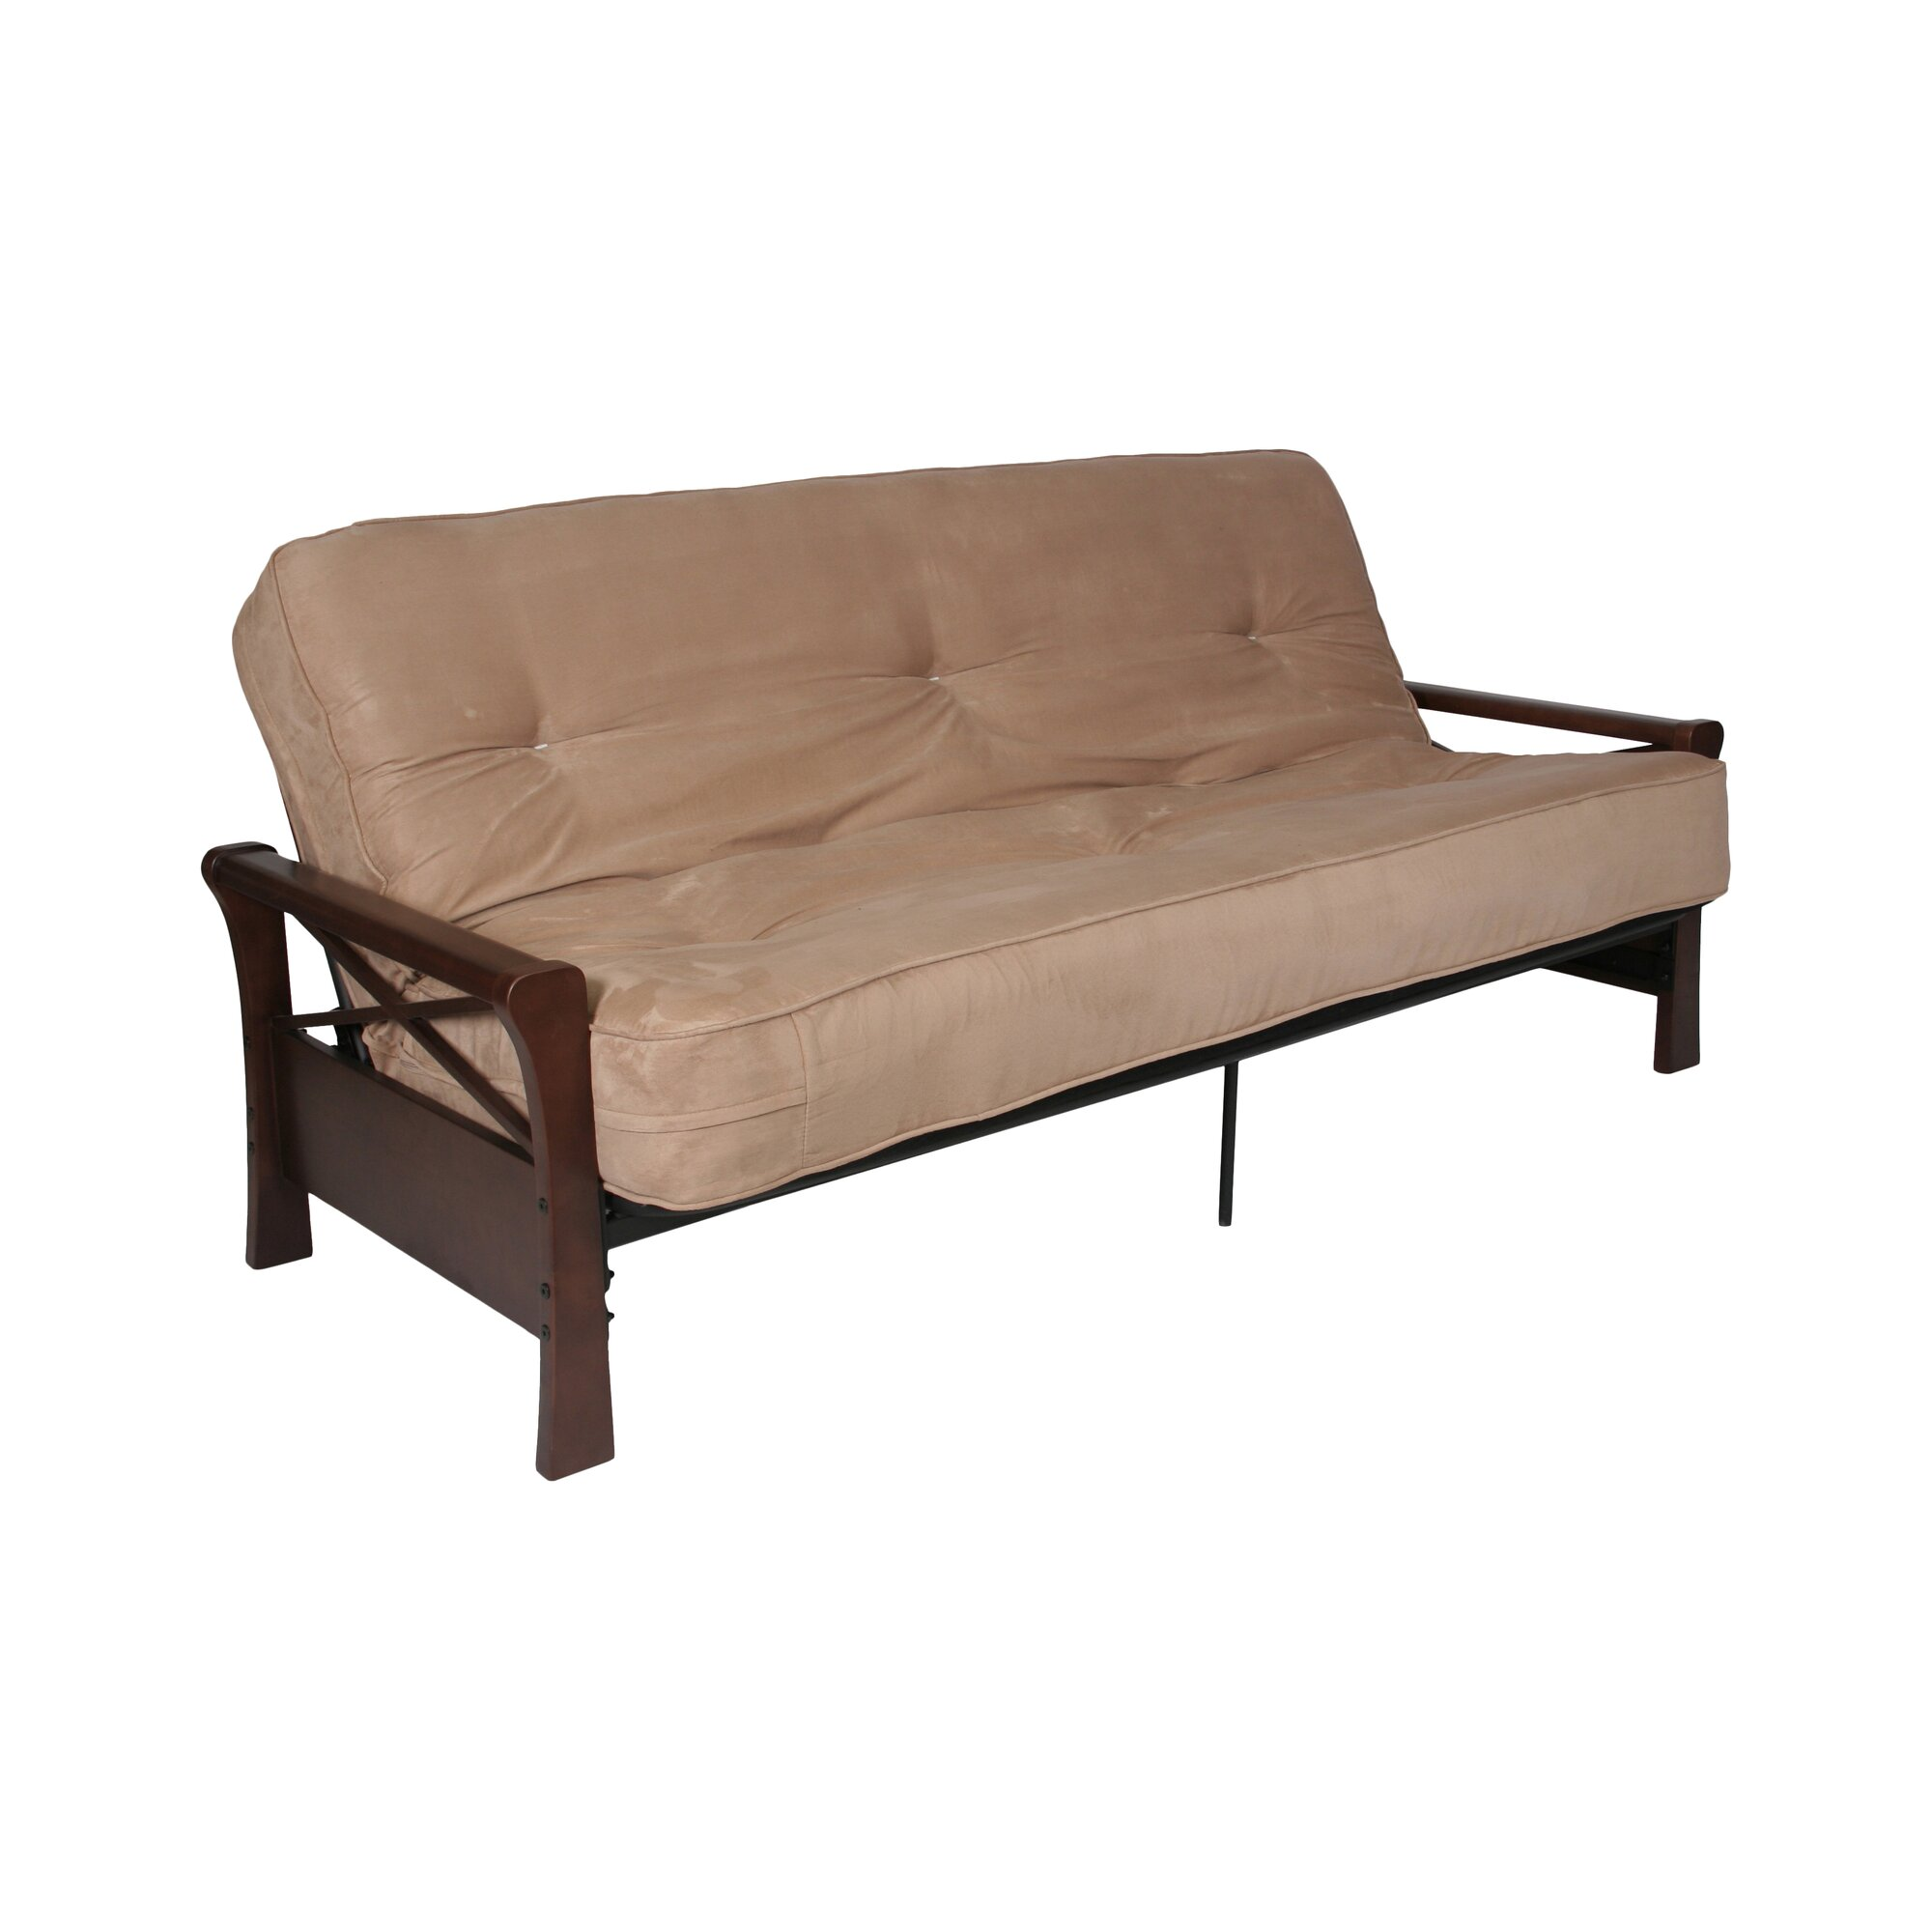 DHP X Wood Arm for Futon & Reviews | Wayfair